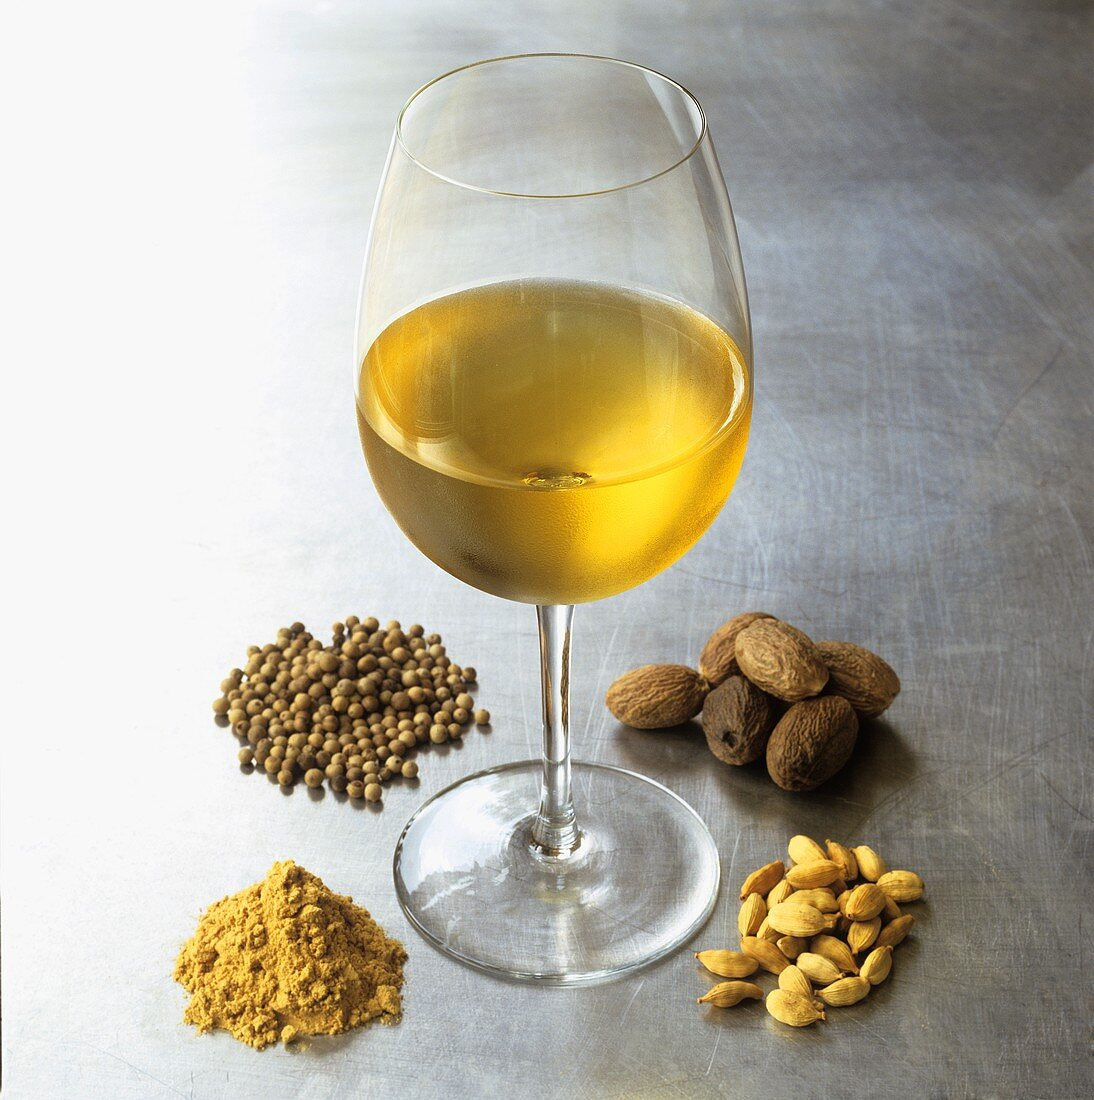 A glass of white wine with aroma components